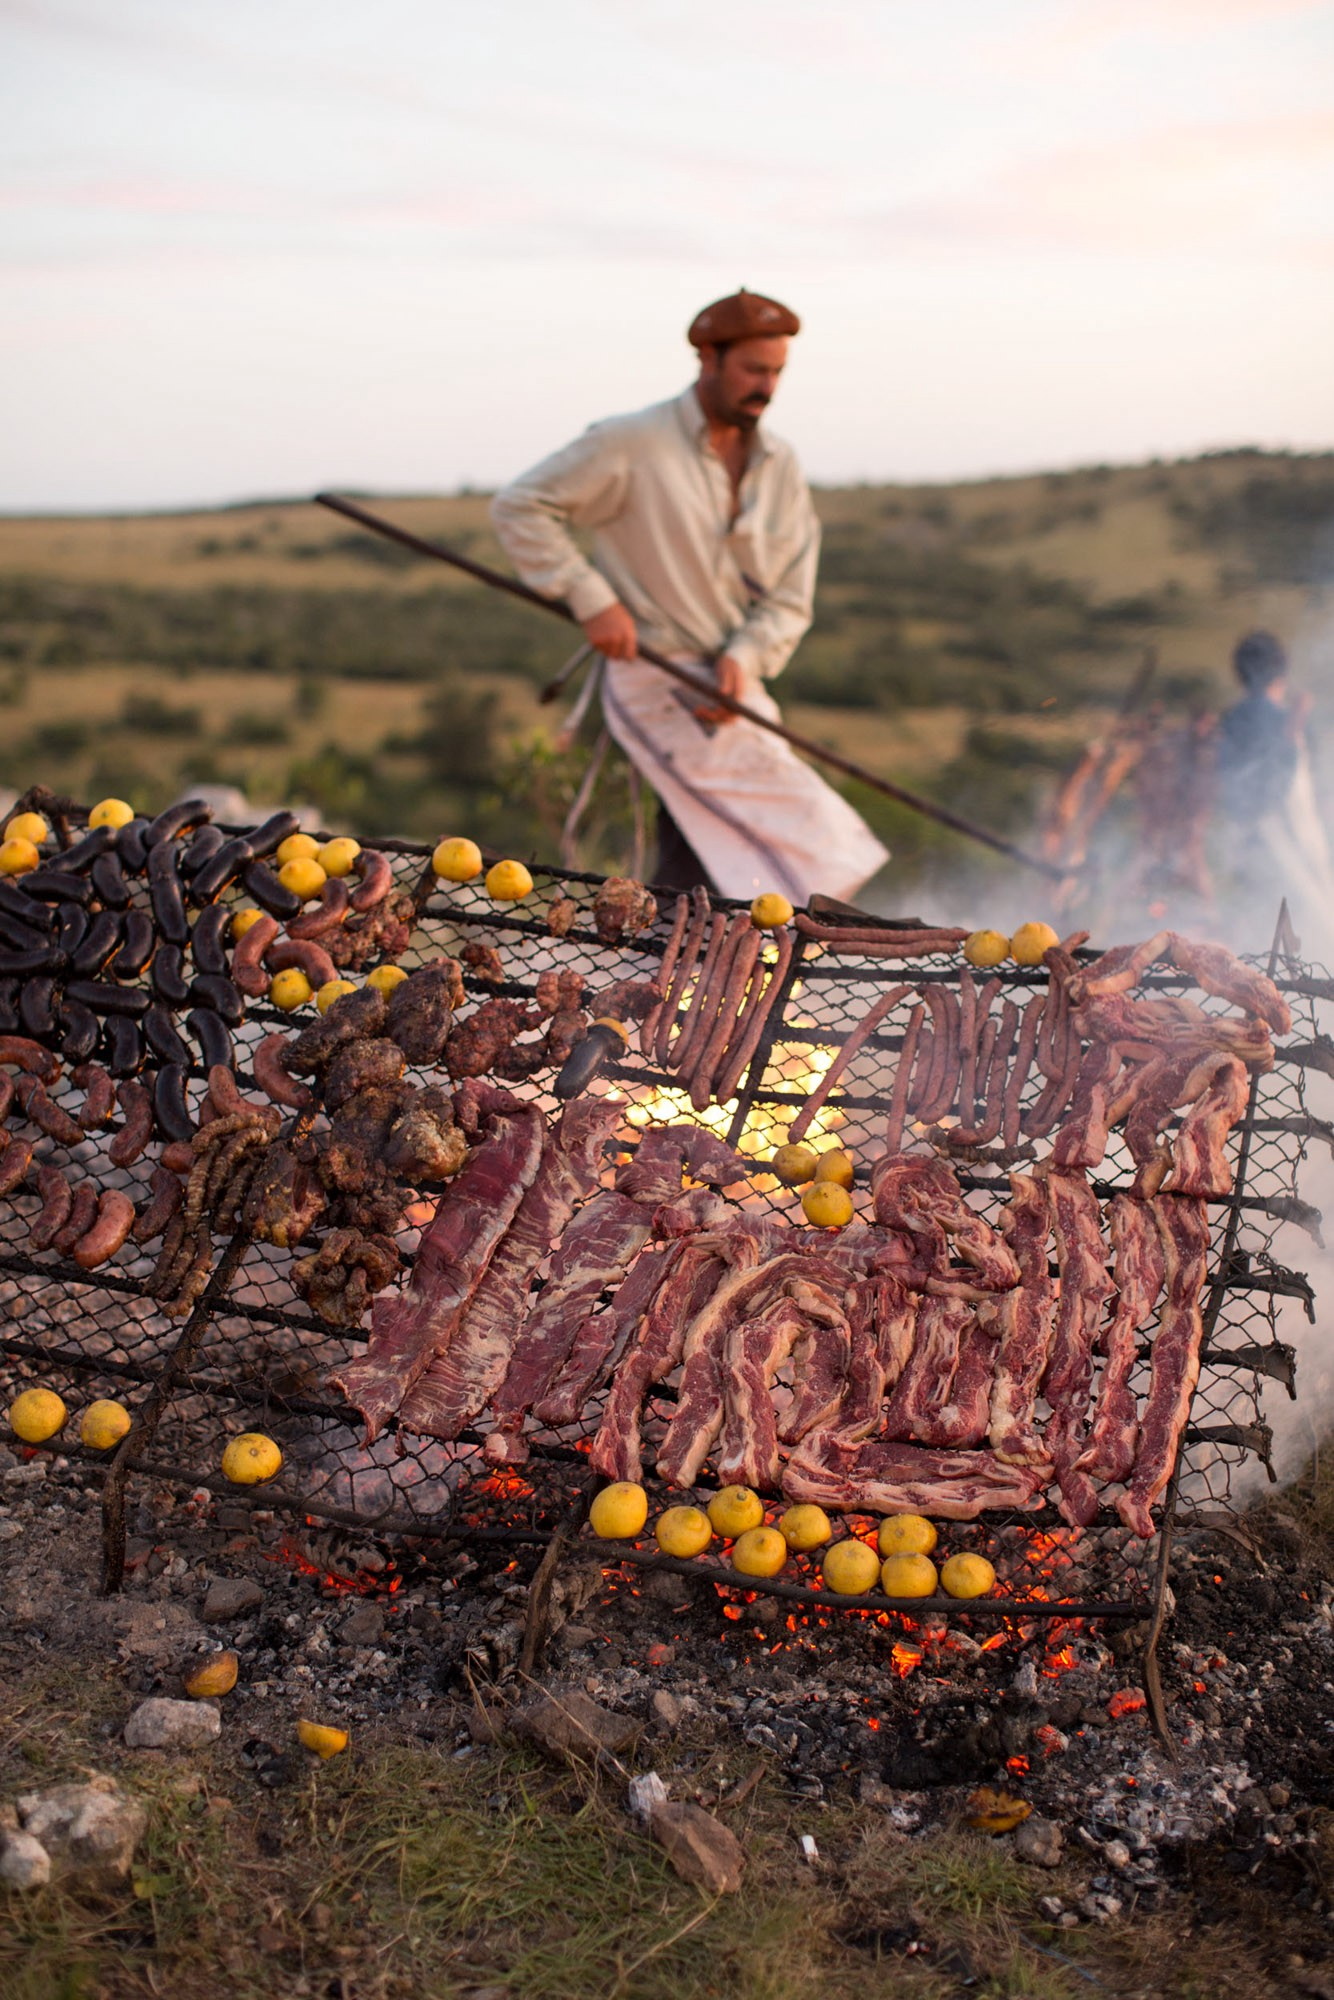 The typical gaucho diet consists of yerba maté and numerous cuts of meat, including blood sausage, chorizo, chitterlings, and asado de tira ribs. ©James Fisher 2017 All Rights Reserved